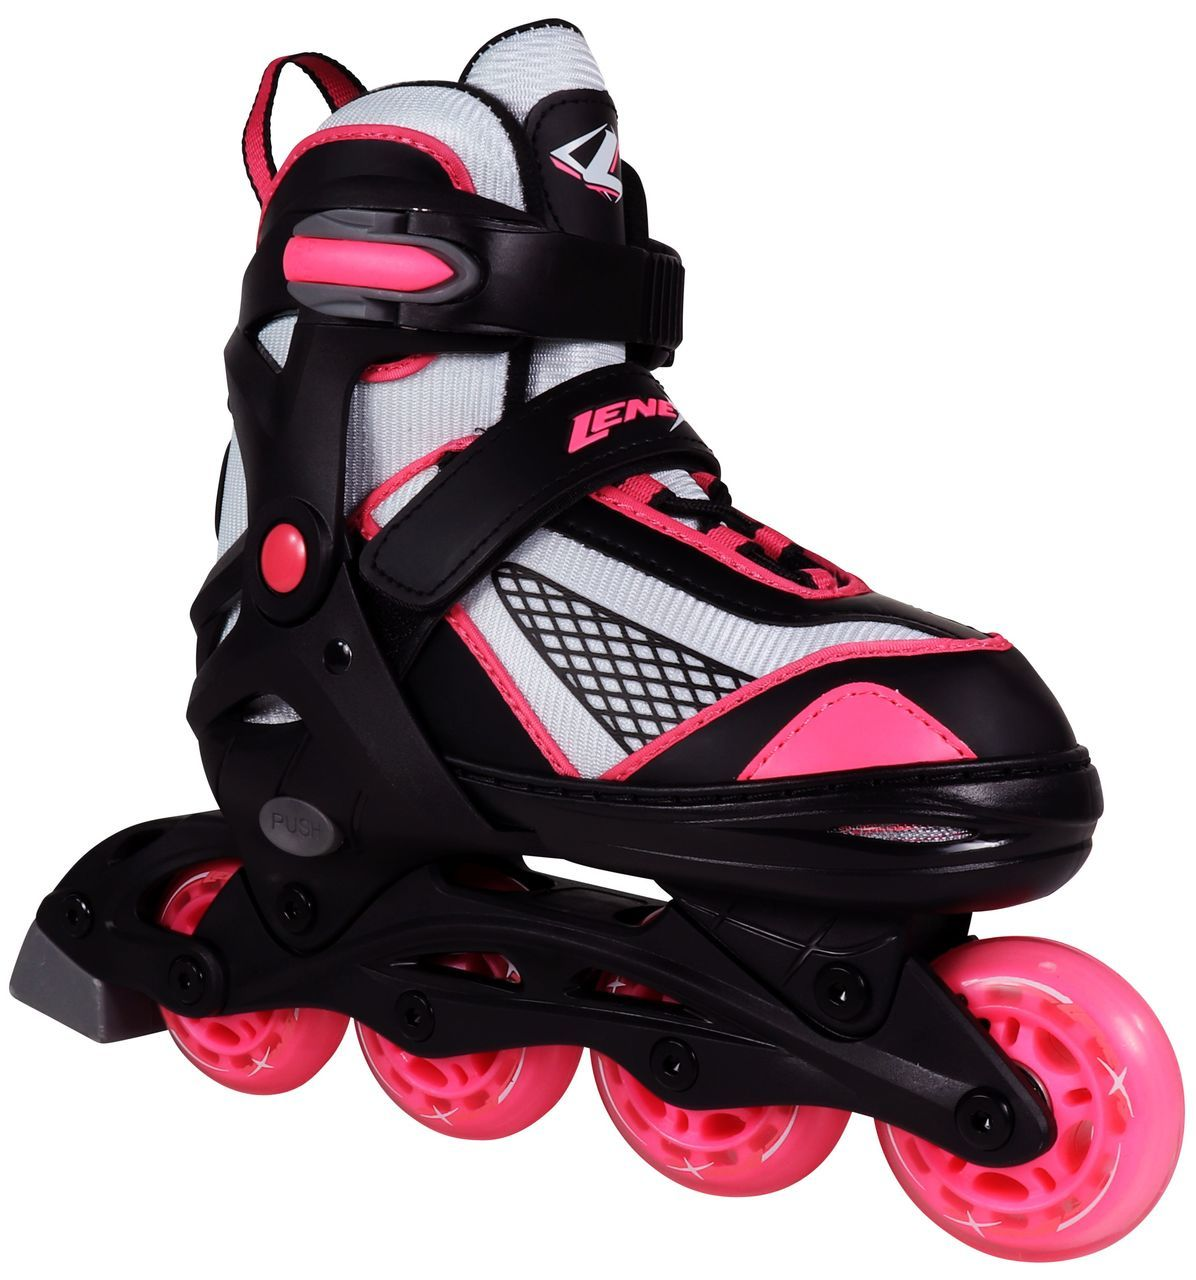 Roller Skating Market In-Depth Profiling With Key Players and Recent Developments and Forecast Period by 2024 | Rollerblade, Powerslide, Sena